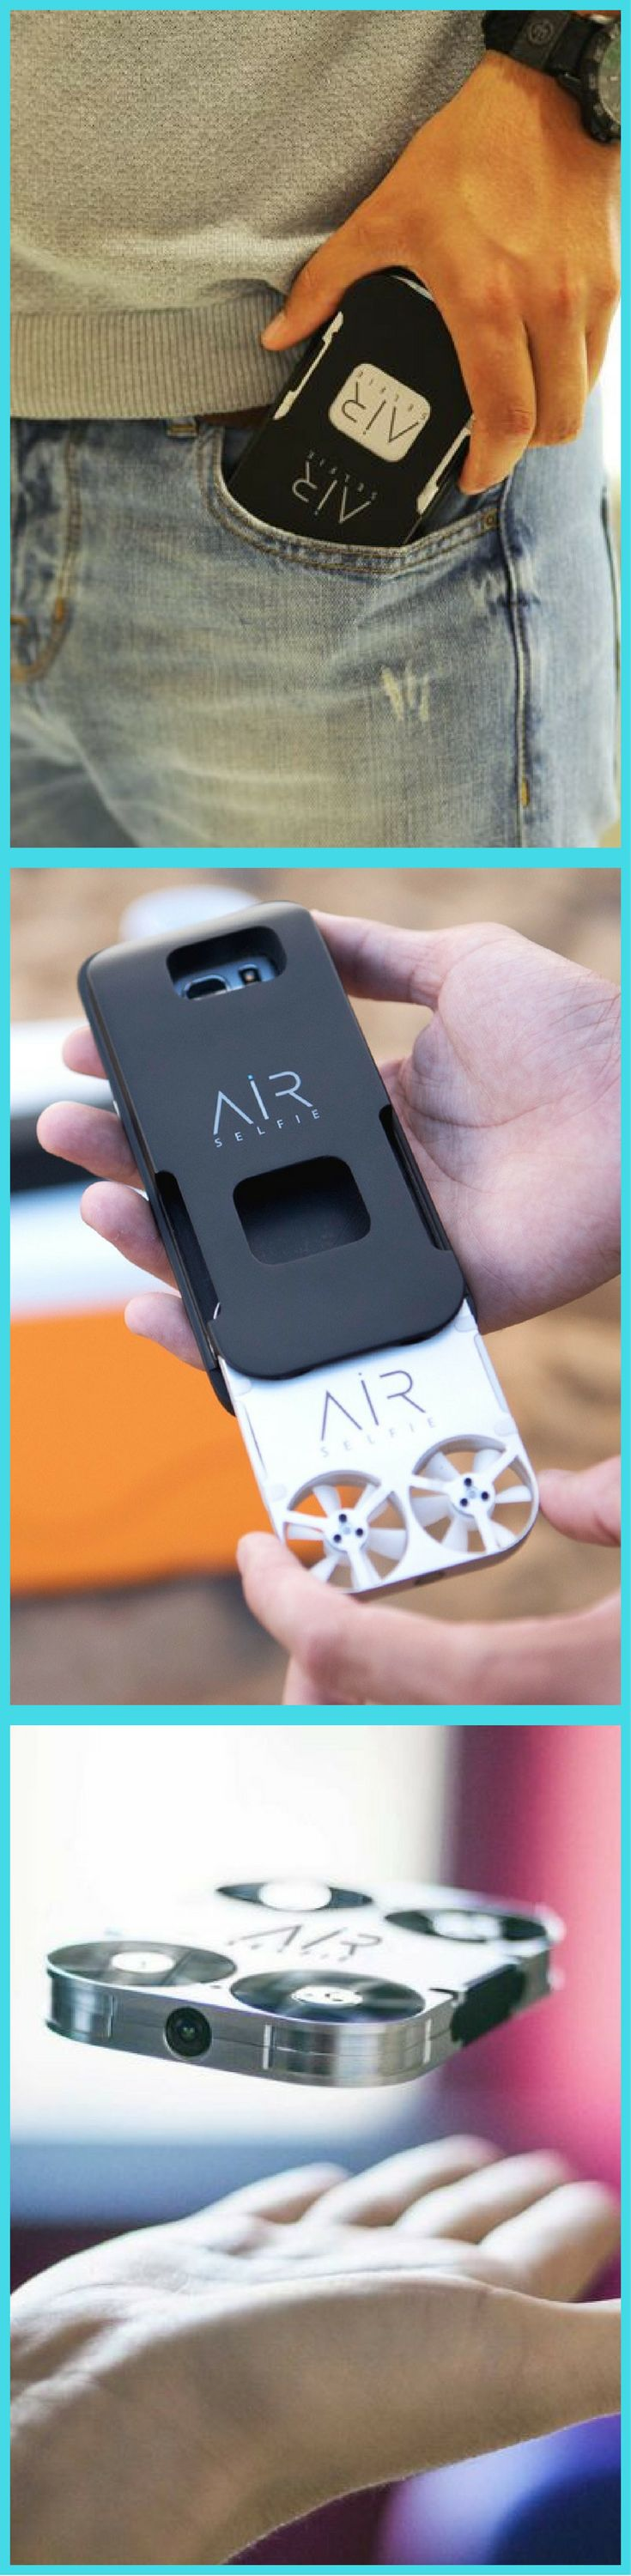 Its the size of a phone and fits in your pocket with your iphone or with Samsung edge 7 INTRODUCING AIRSELFIE